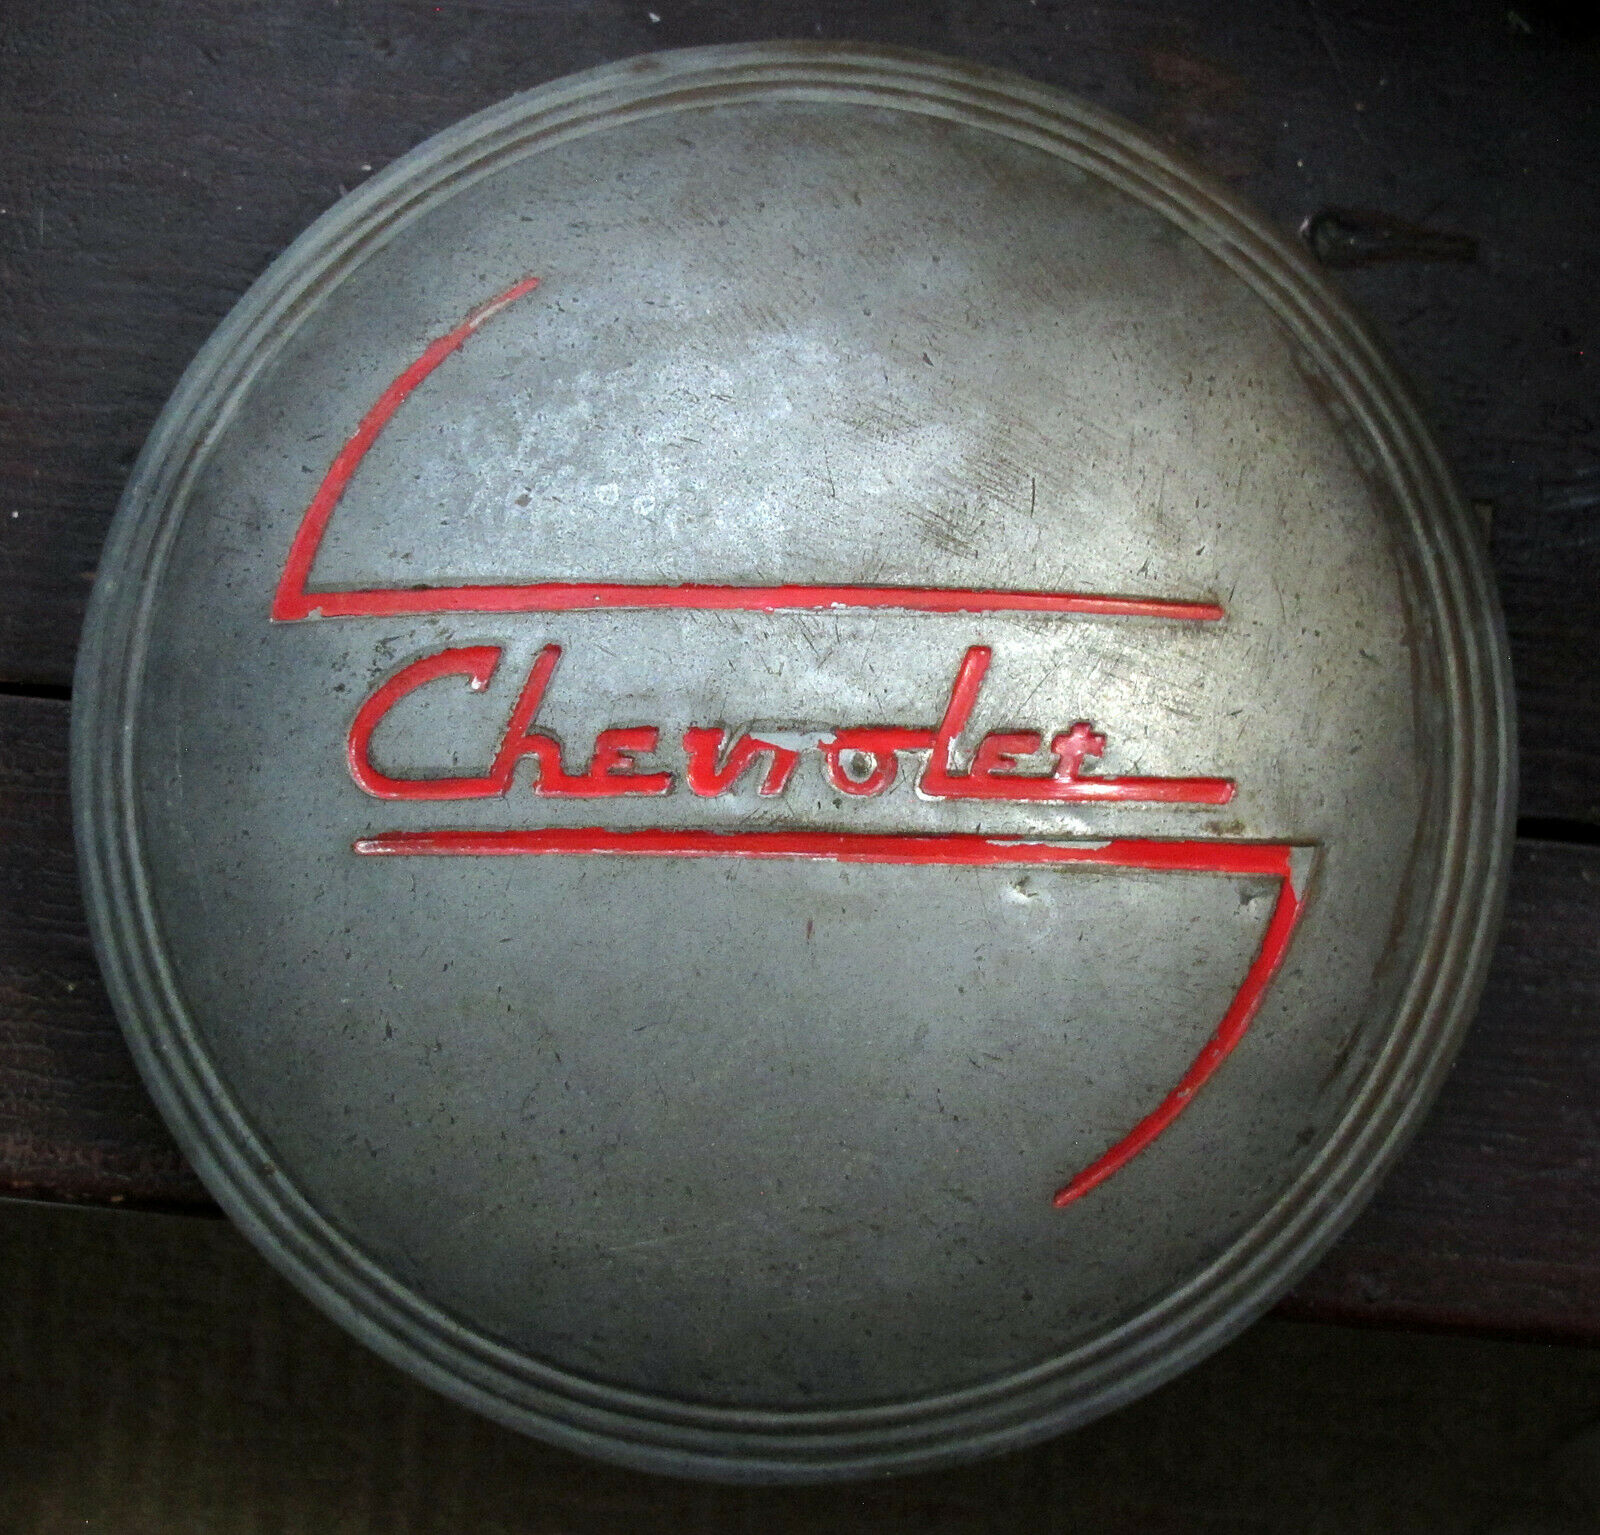 Old chevy hubcap with script.jpg